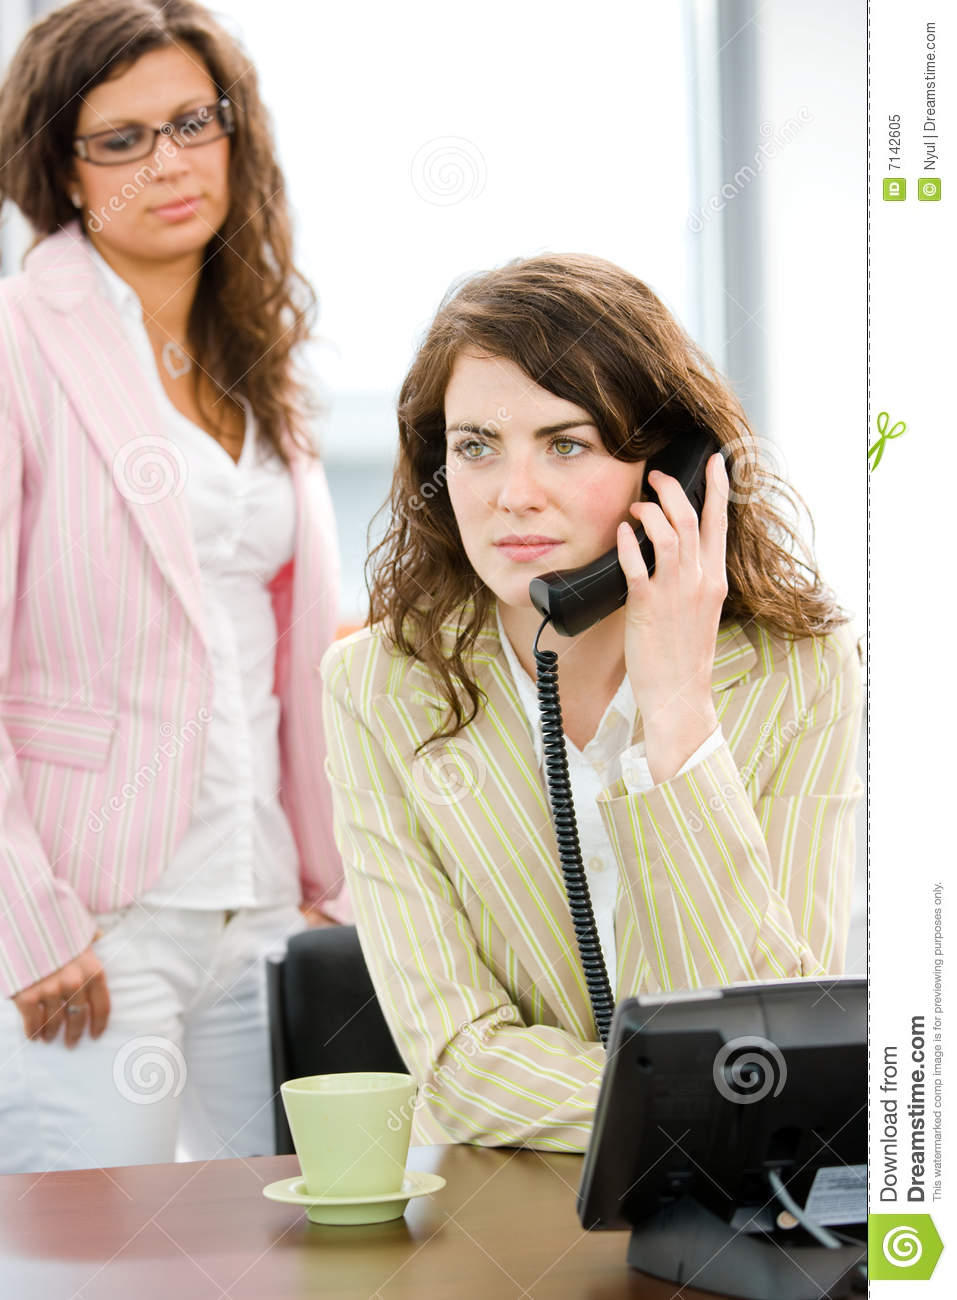 Business woman calling on phone